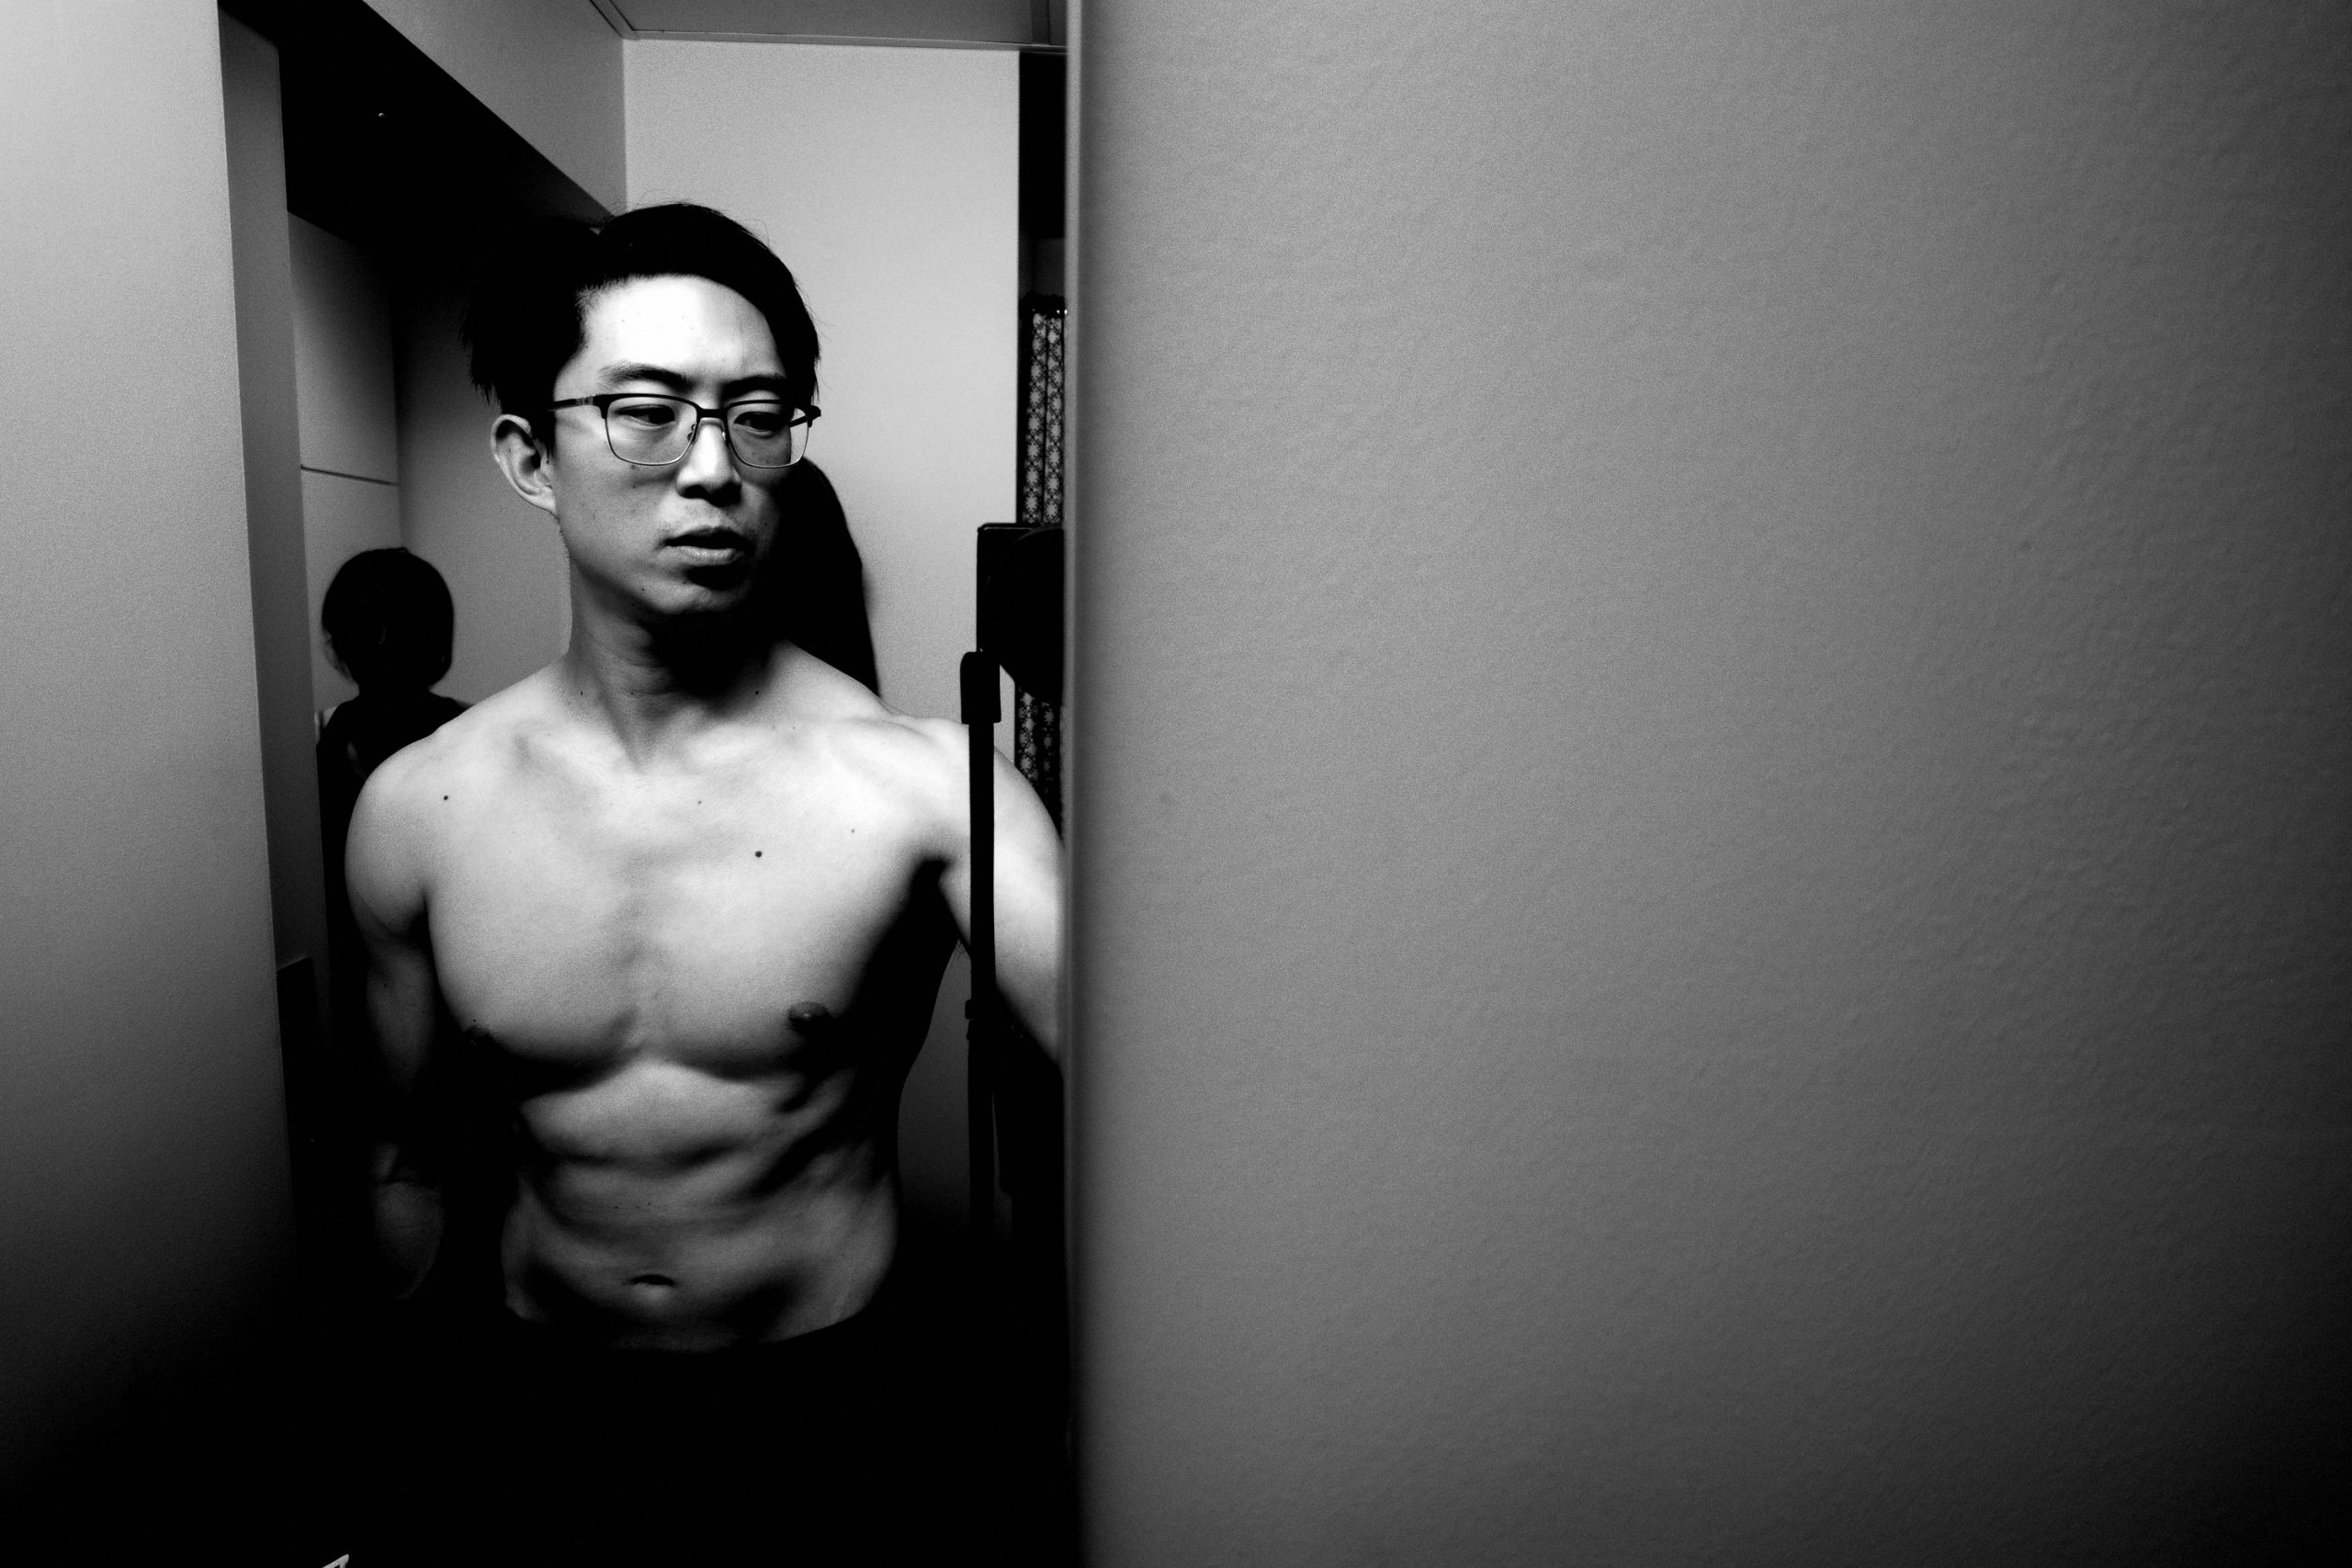 Selfie body muscle chest